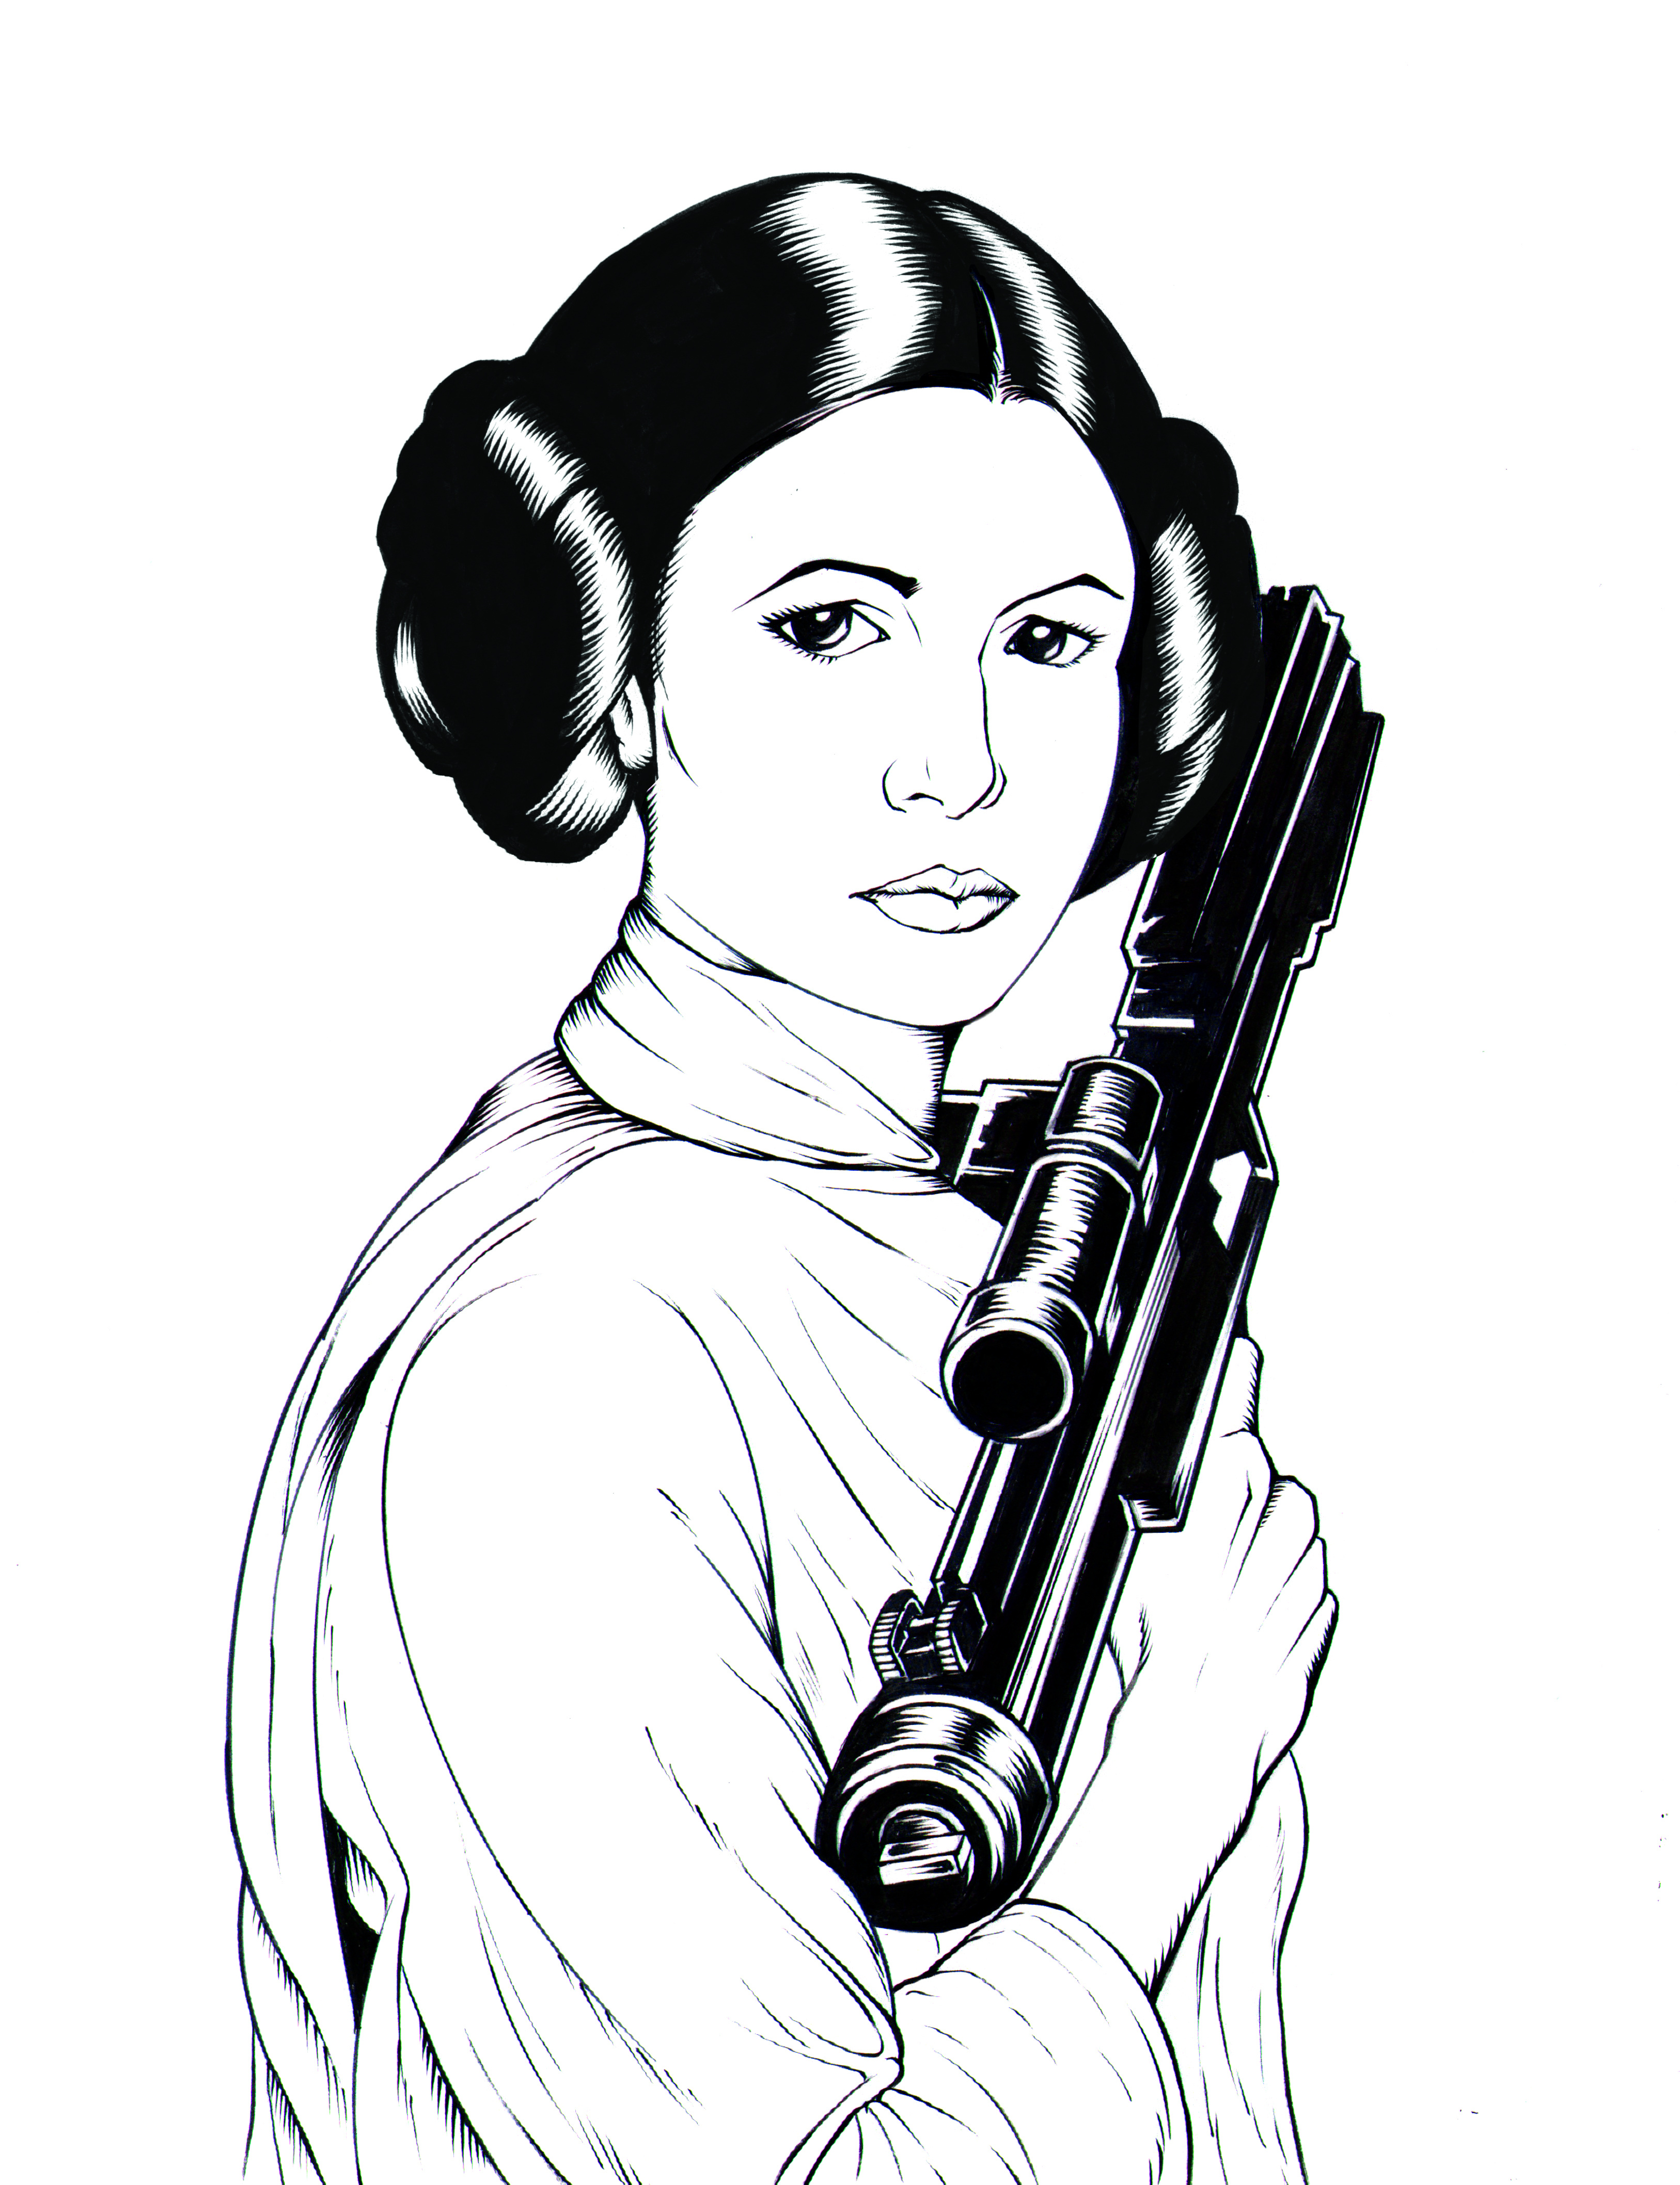 Tribute to Carrie Fisher